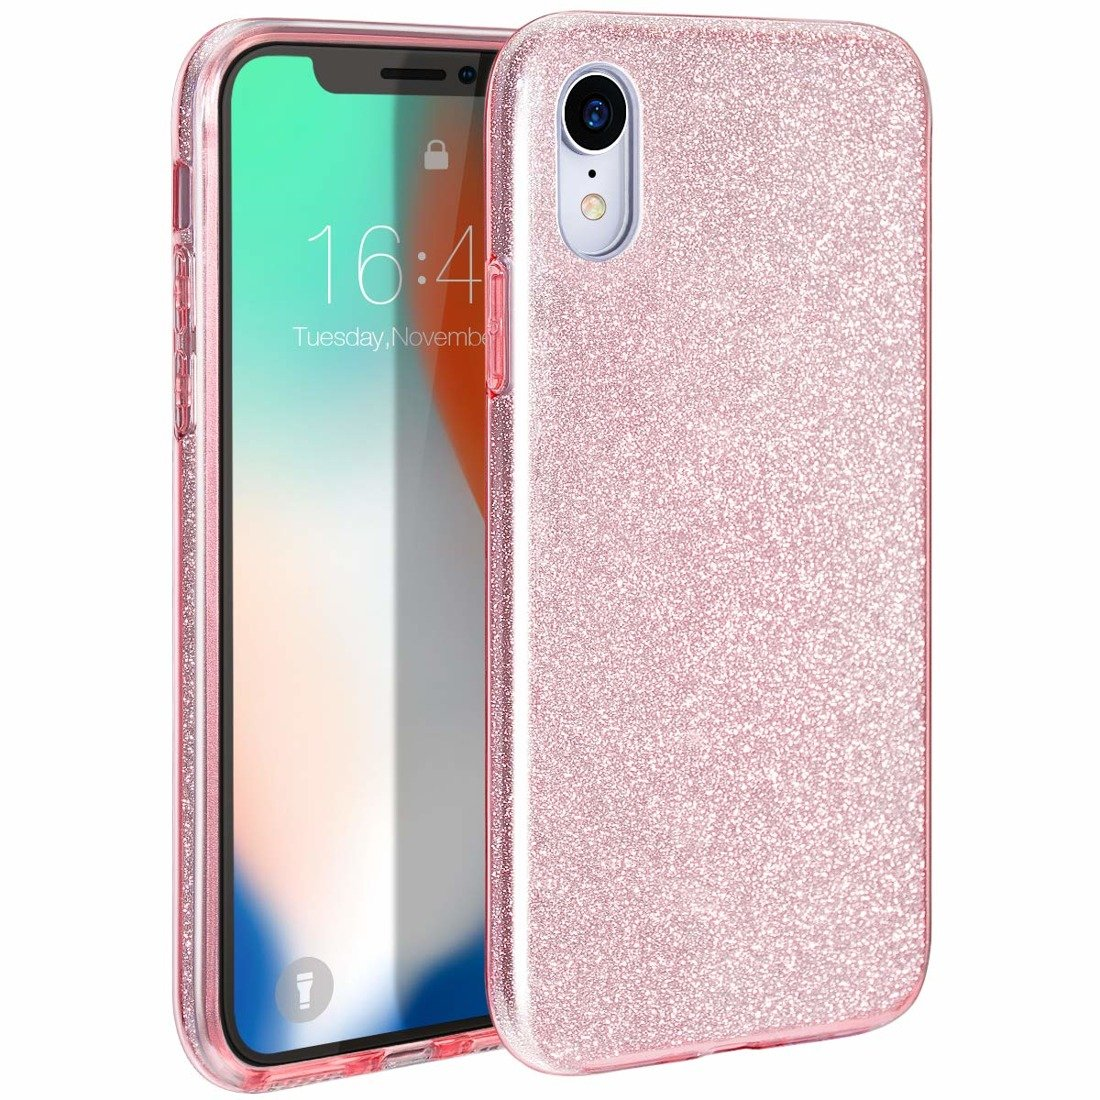 Glitter case SAMSUNG GALAXY S10 pink | CASES \ Back Cases \ Glitter